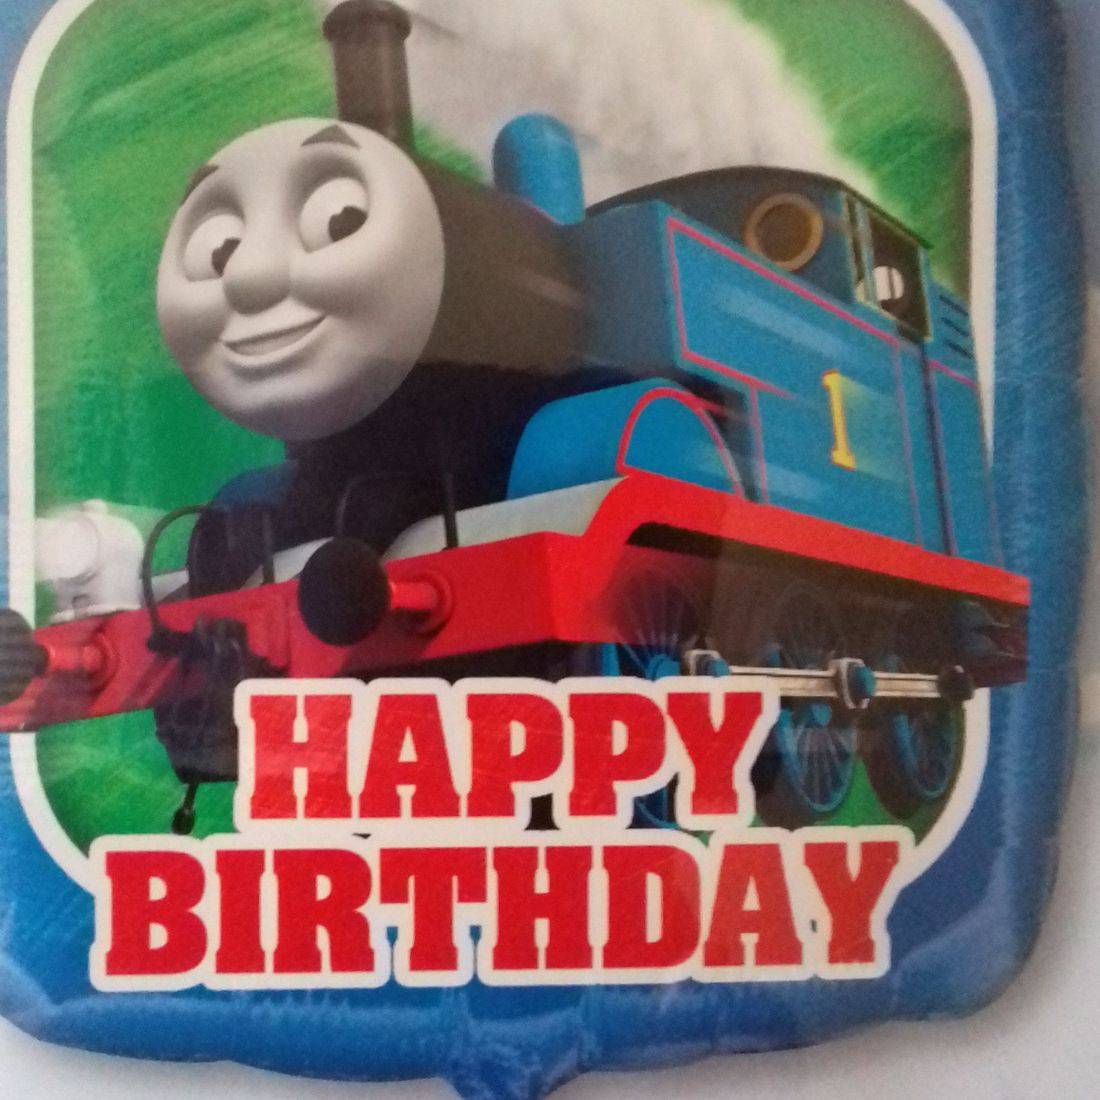 HAPPY BIRTHDAY - Thomas the Tank